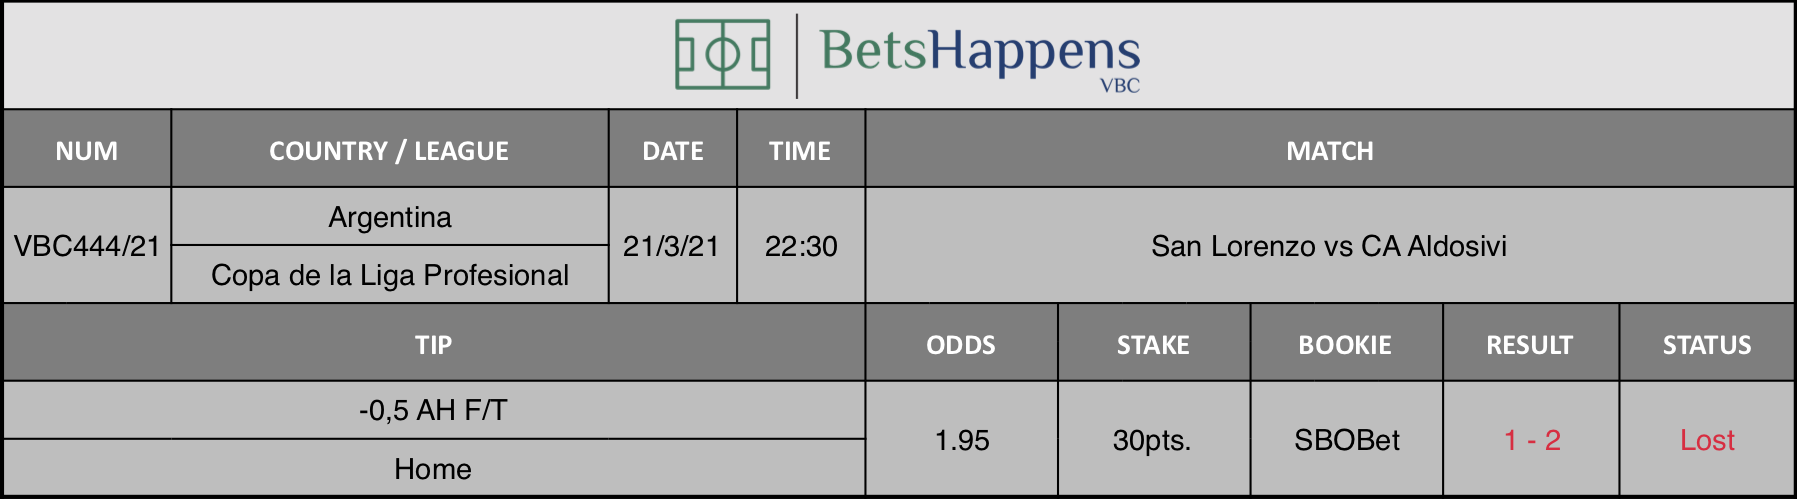 Results of our tip for the San Lorenzo vs CA Aldosivi match where -0,5 AH F/T Home is recommended.